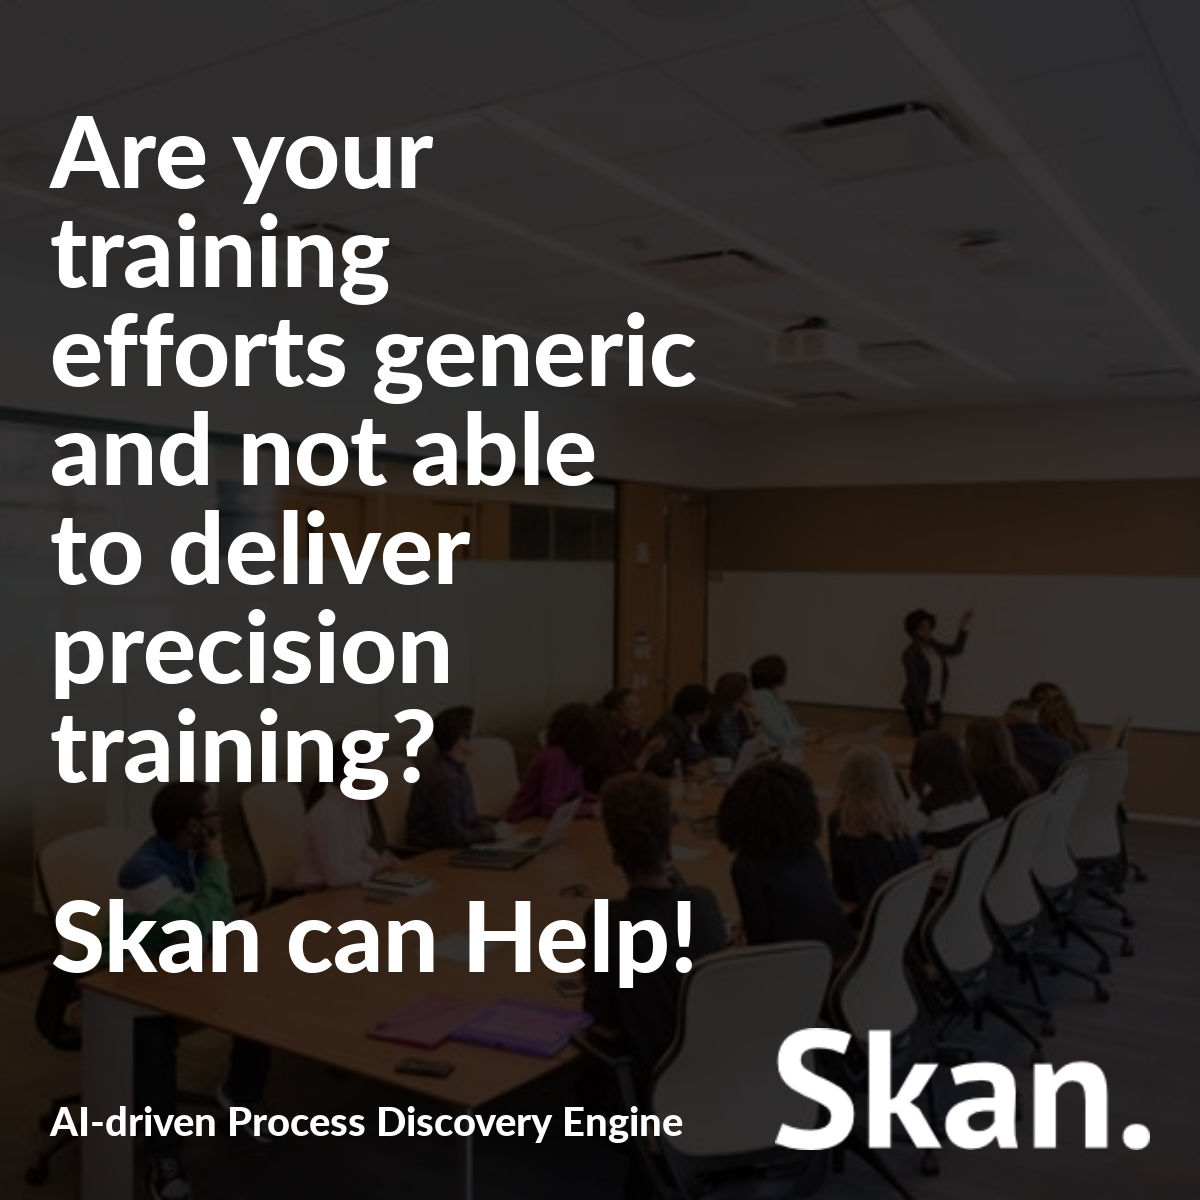 Process Discovery Leads to Precision Training Opportunities